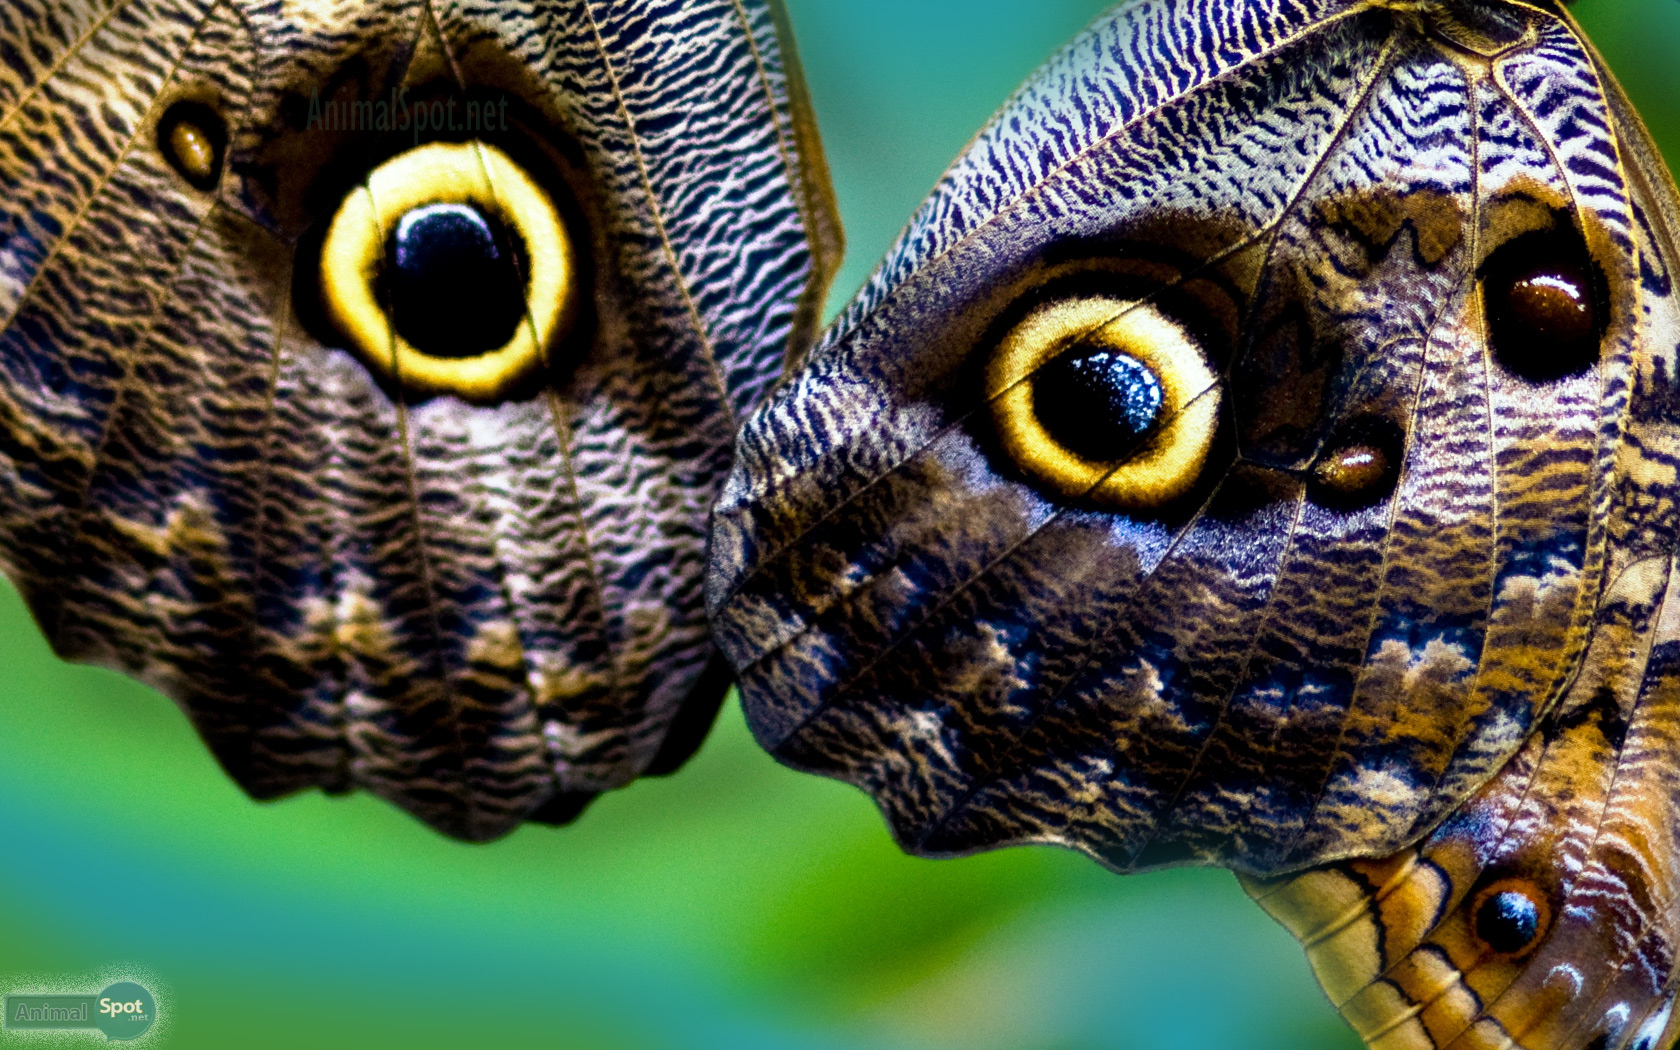 Butterfly Wallpapers Animal Spot